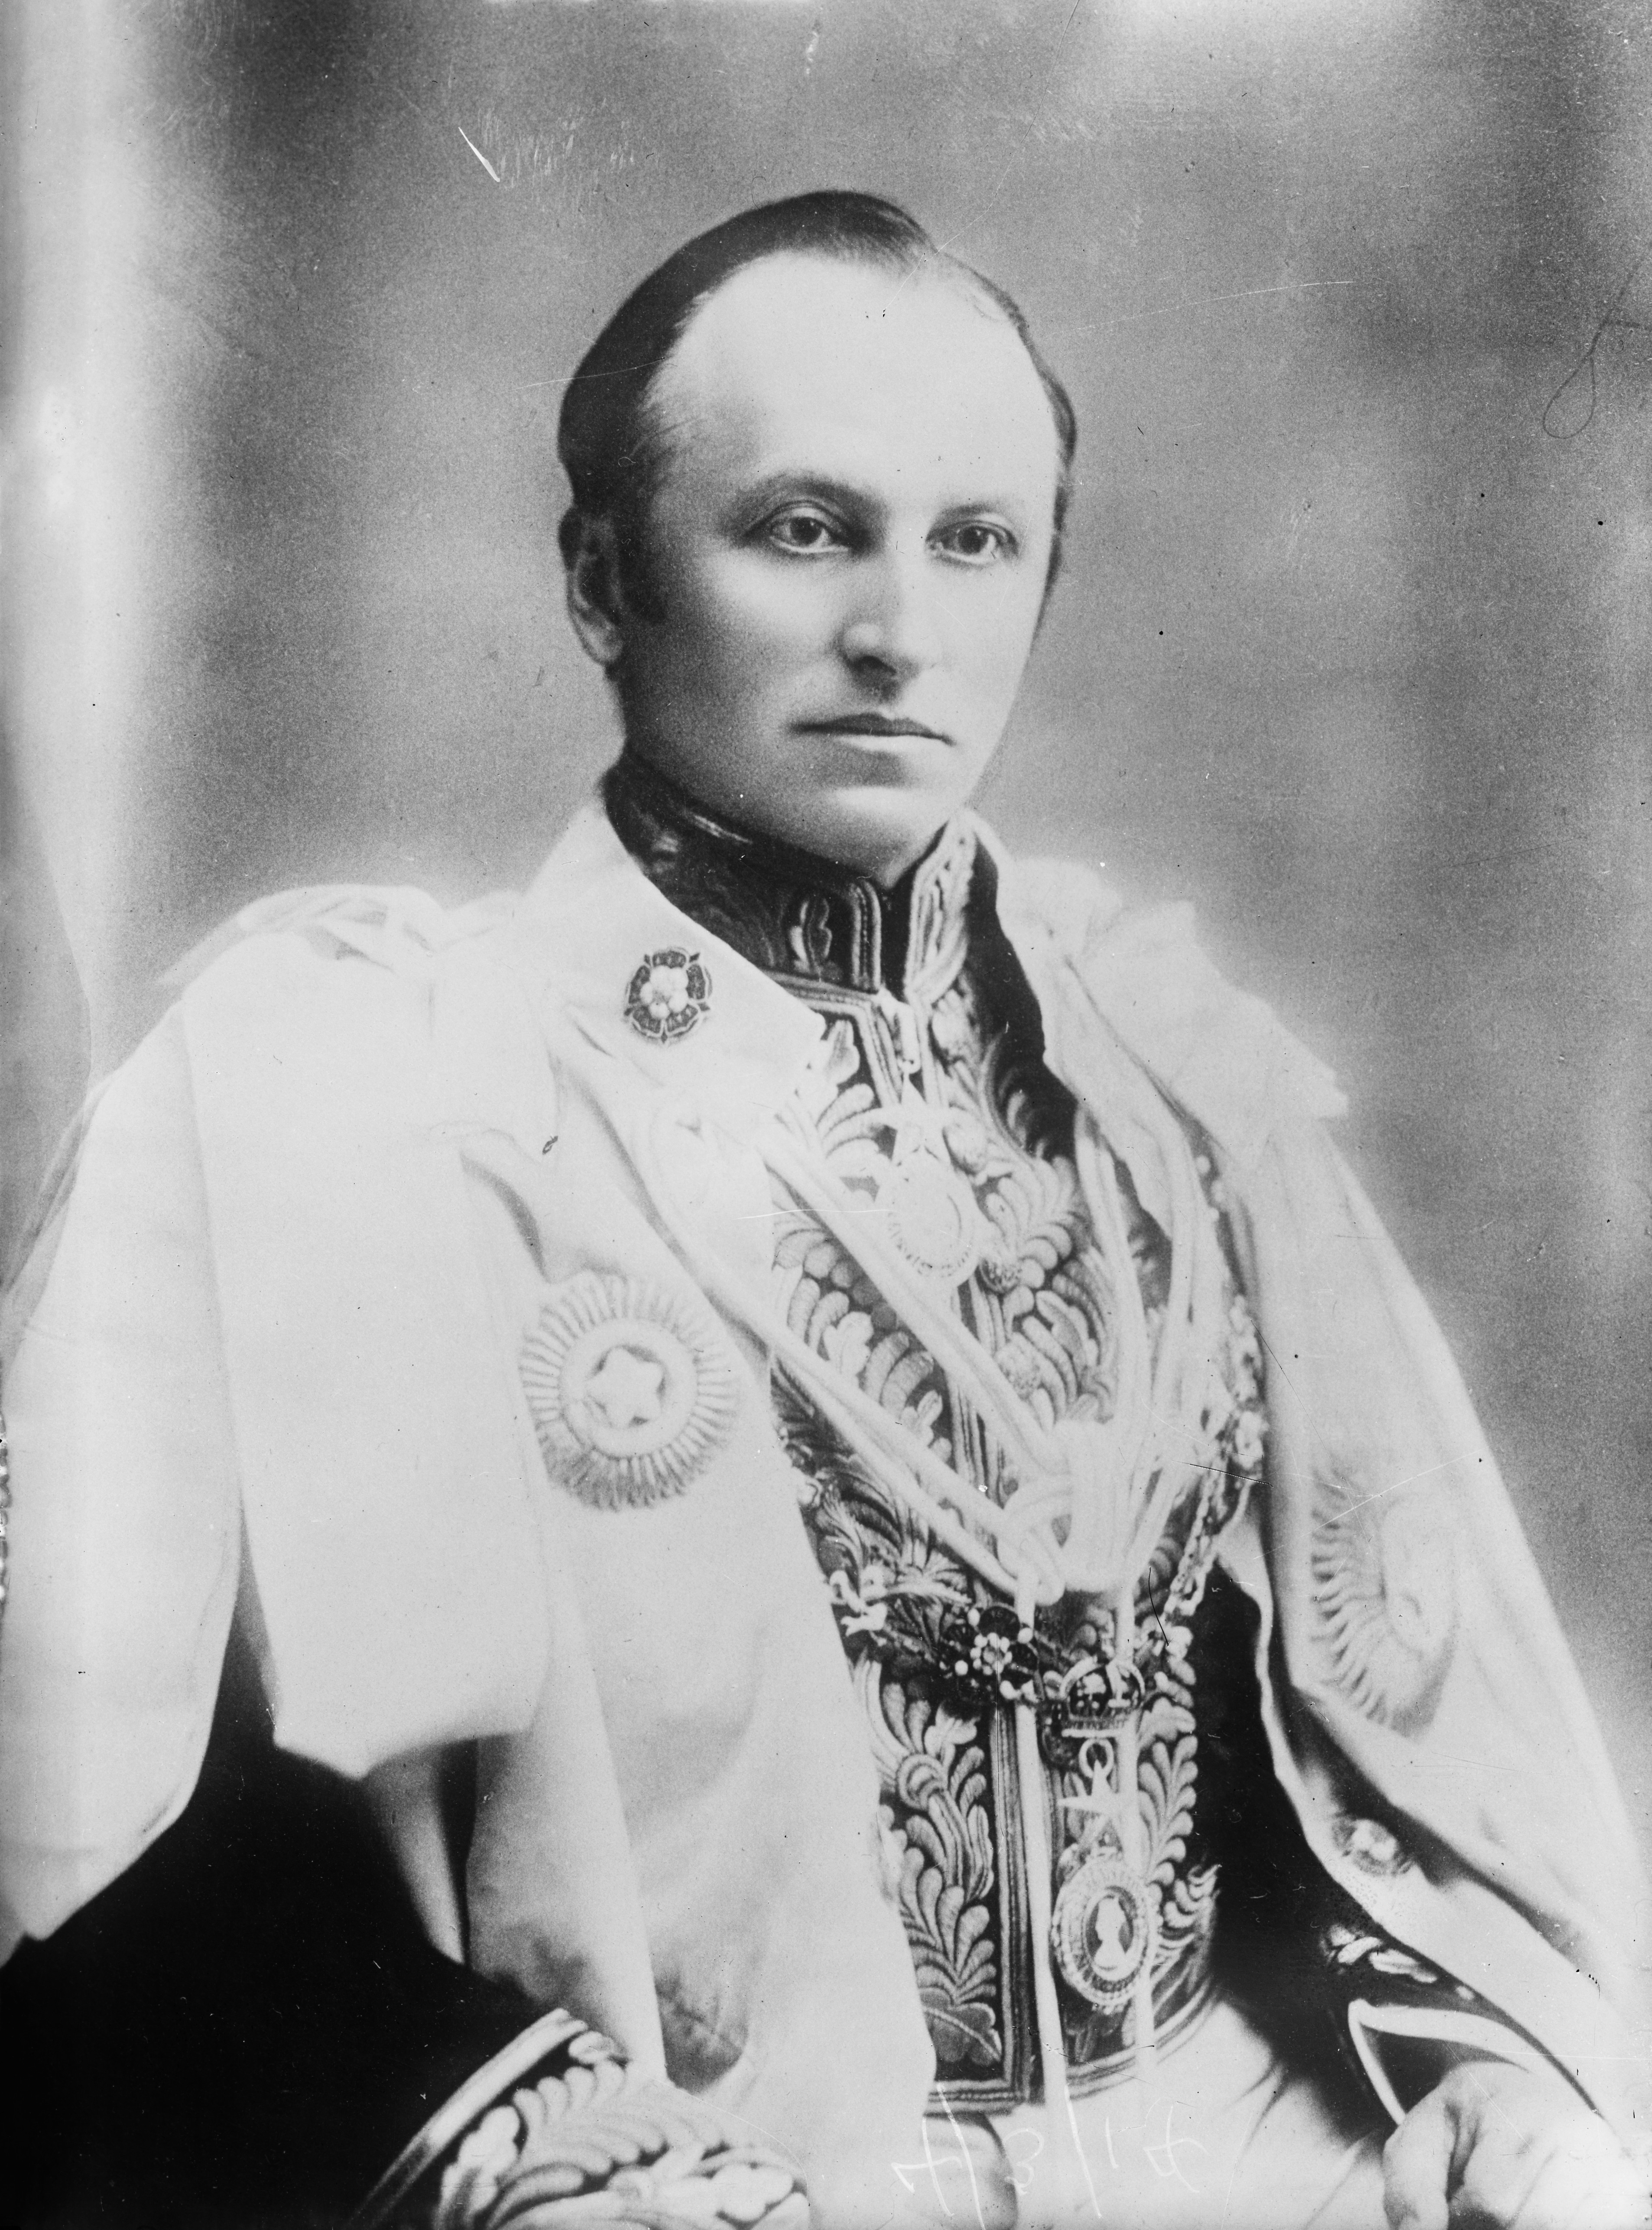 George, Lord Curzon, Viceroy of India.